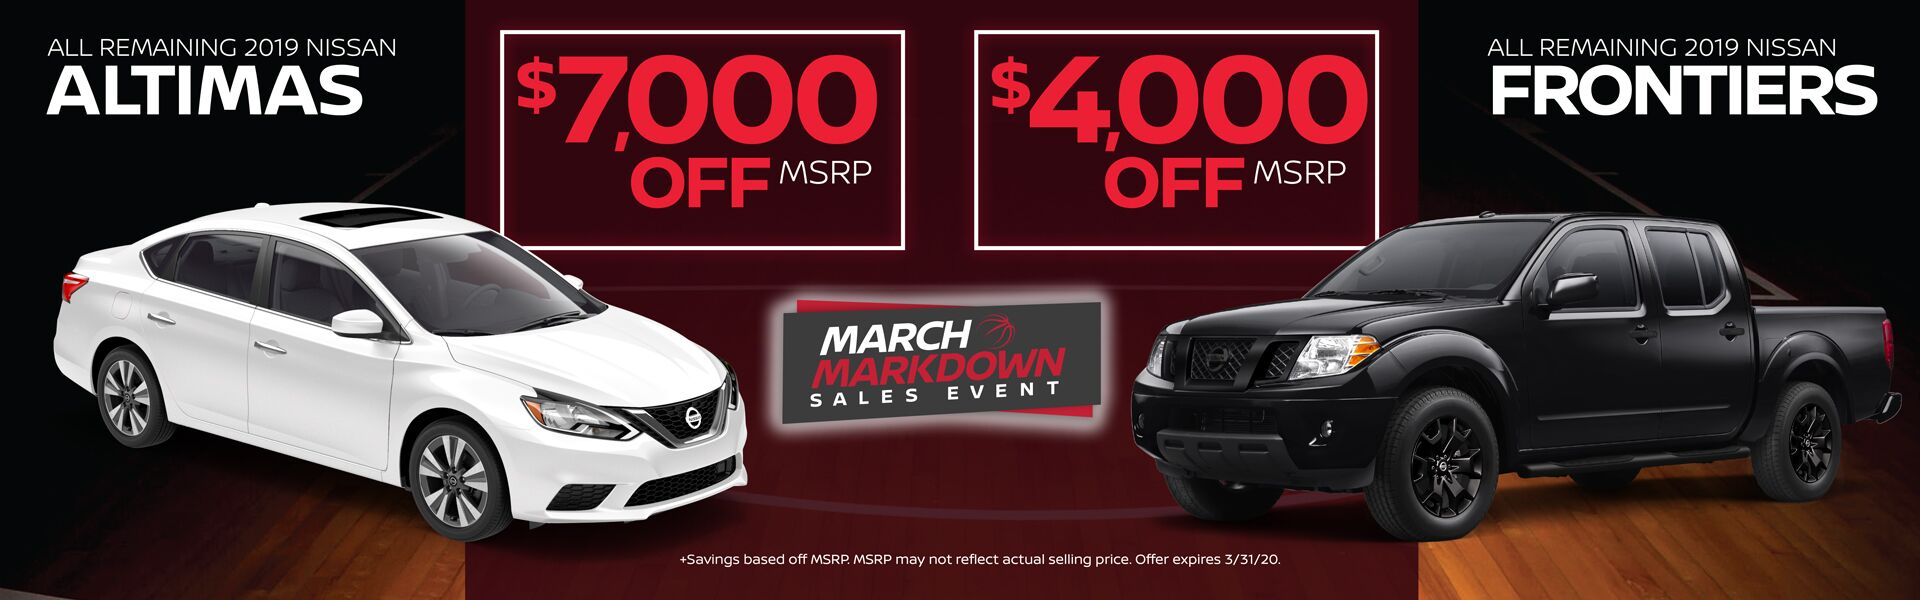 Remaining 2019 Altimas and Titans $4,000-$7,000 off MSRP